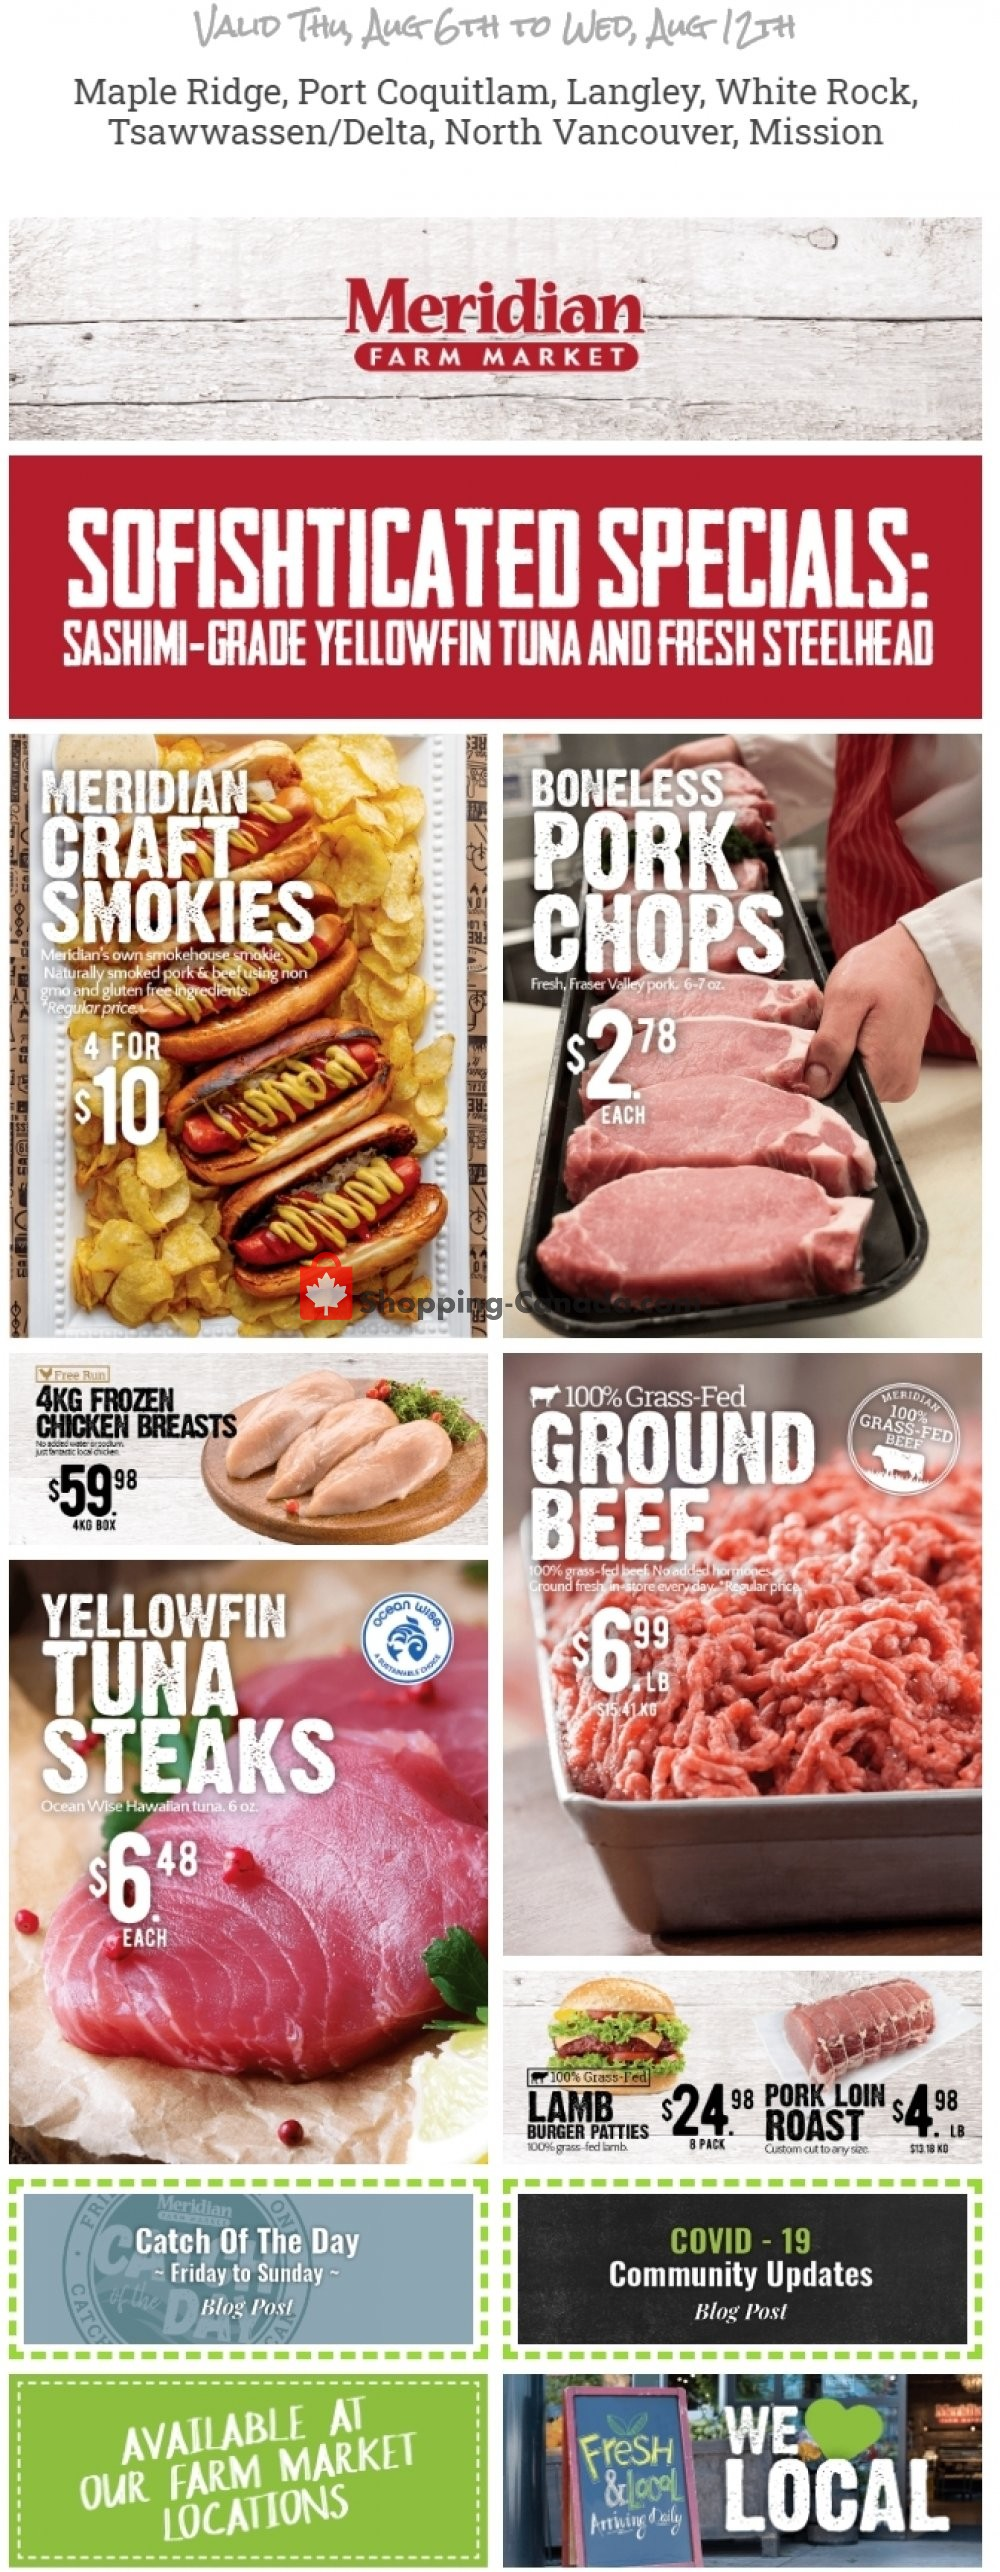 Flyer Meridian Meats & Meridian Farm Market Canada - from Thursday August 6, 2020 to Wednesday August 12, 2020